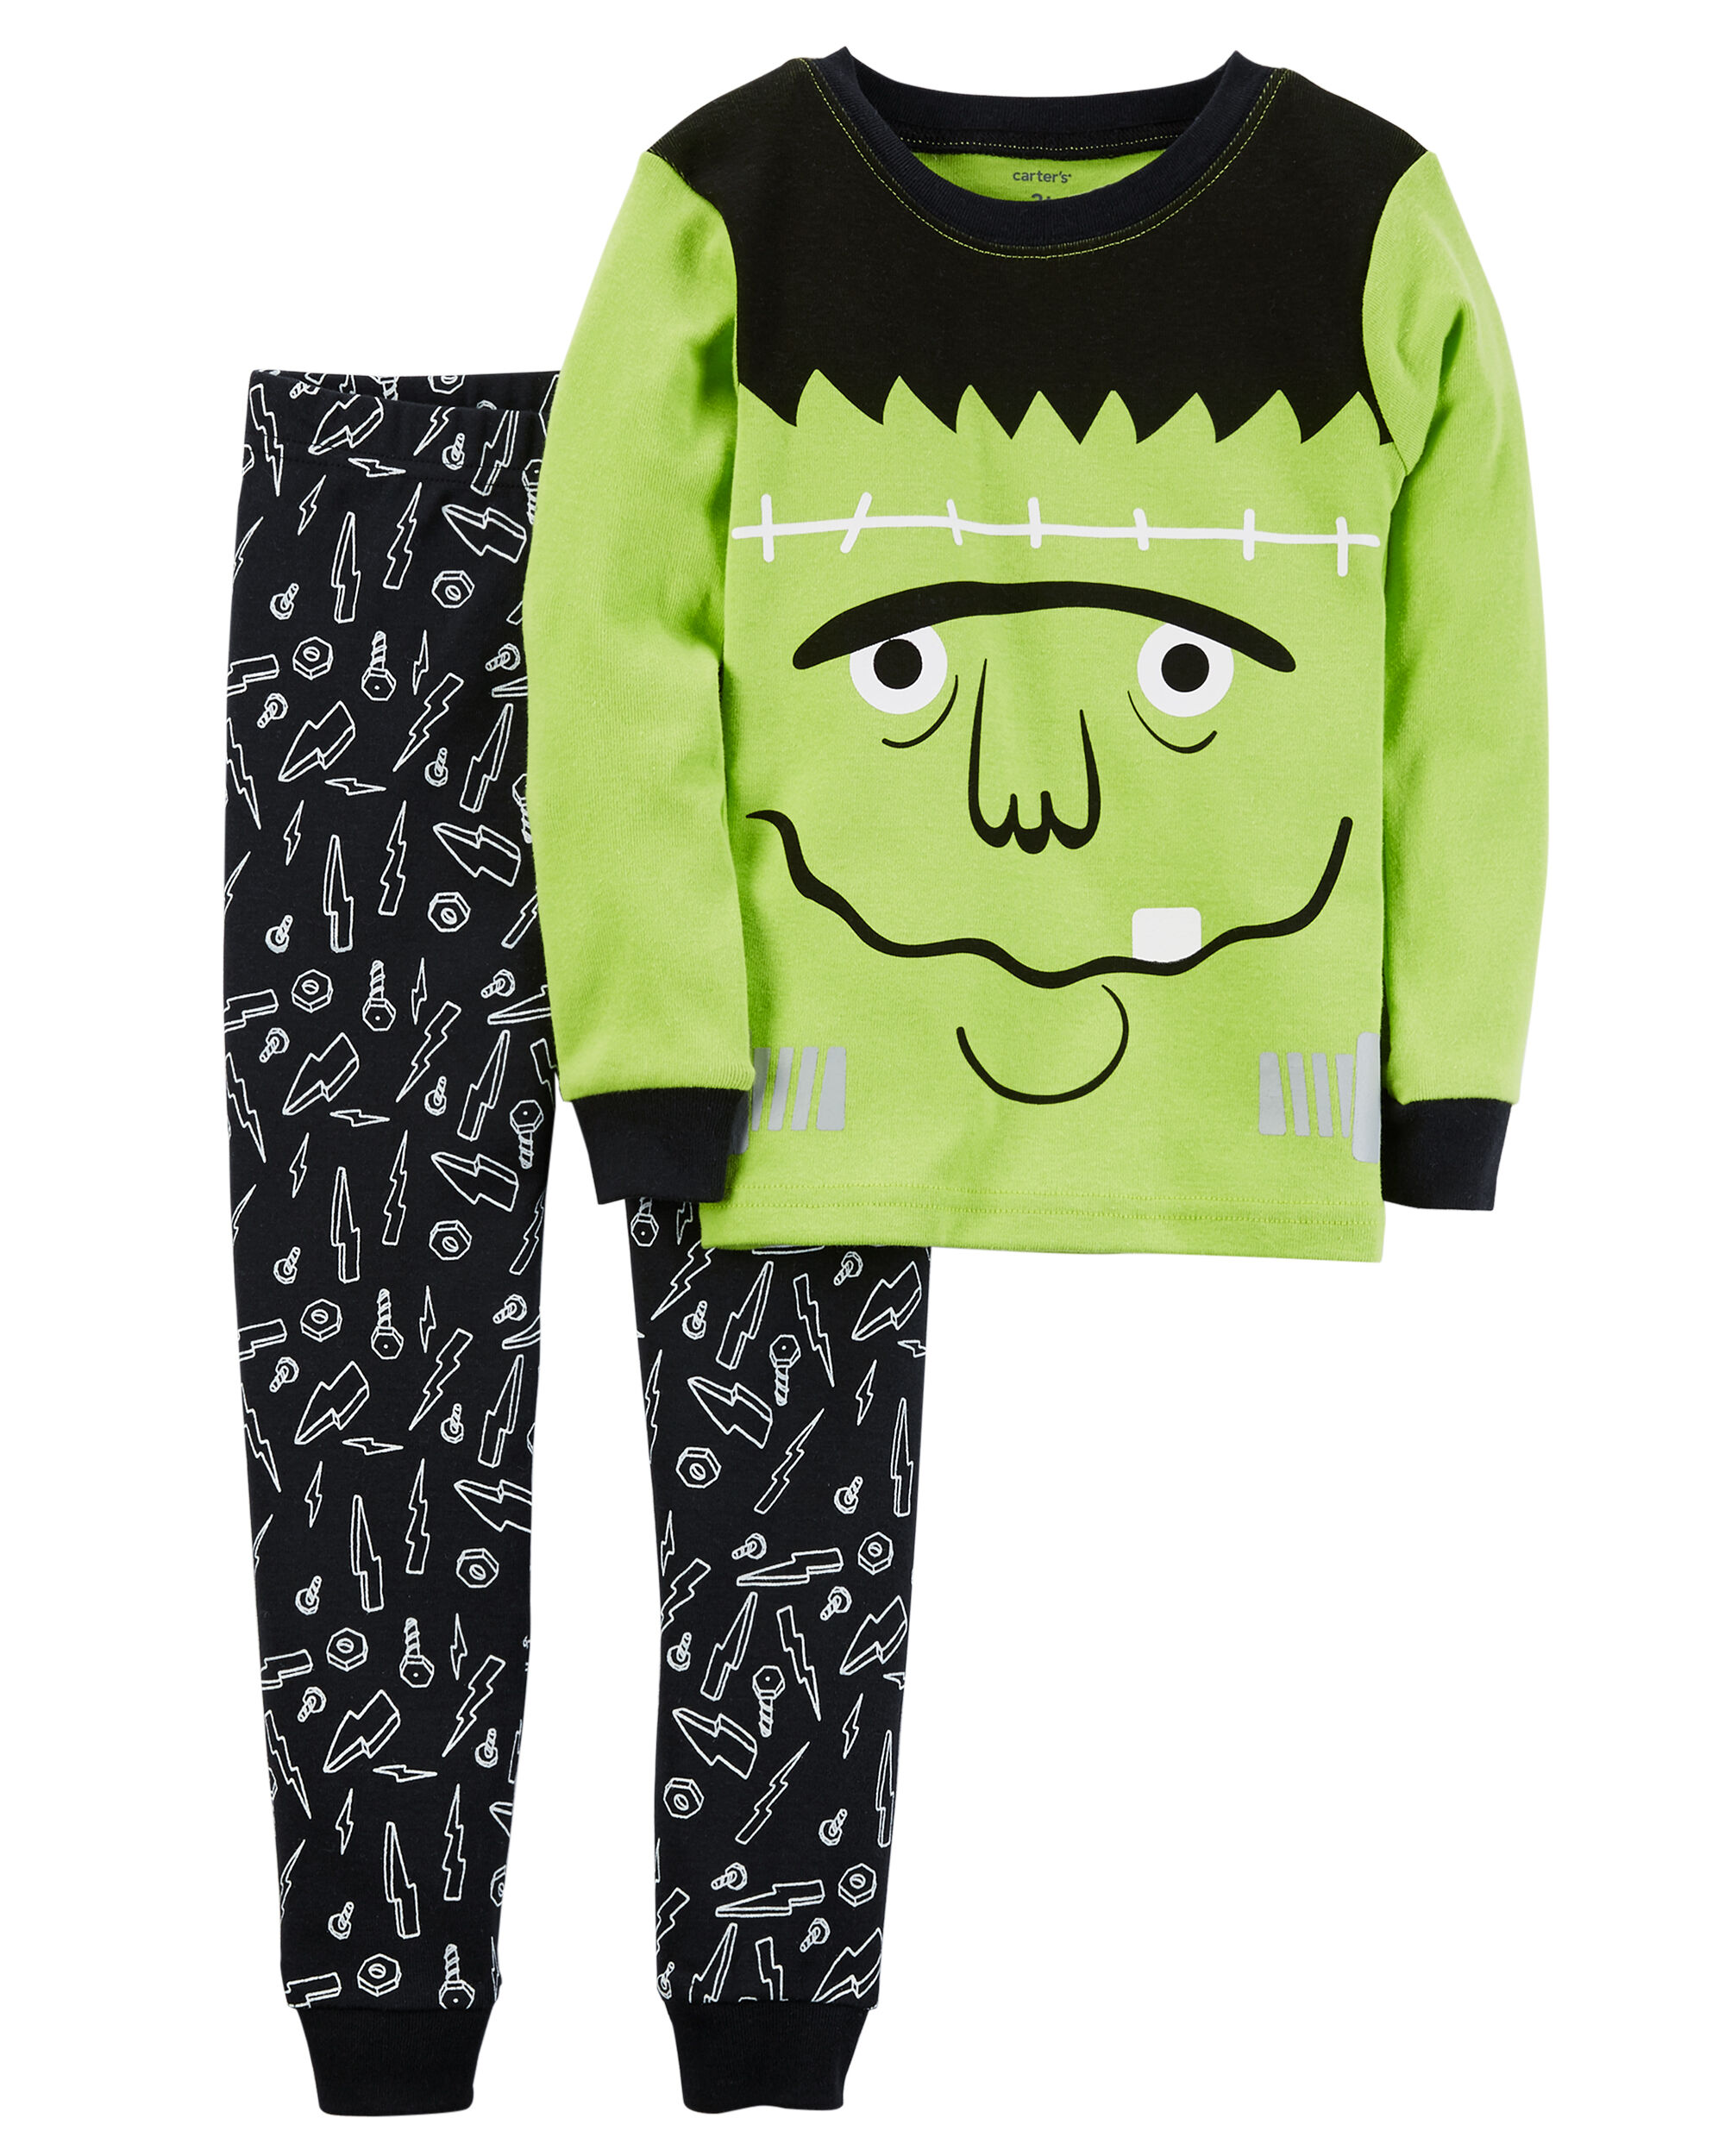 2 piece frankenstein snug fit cotton halloween pjs loading zoom